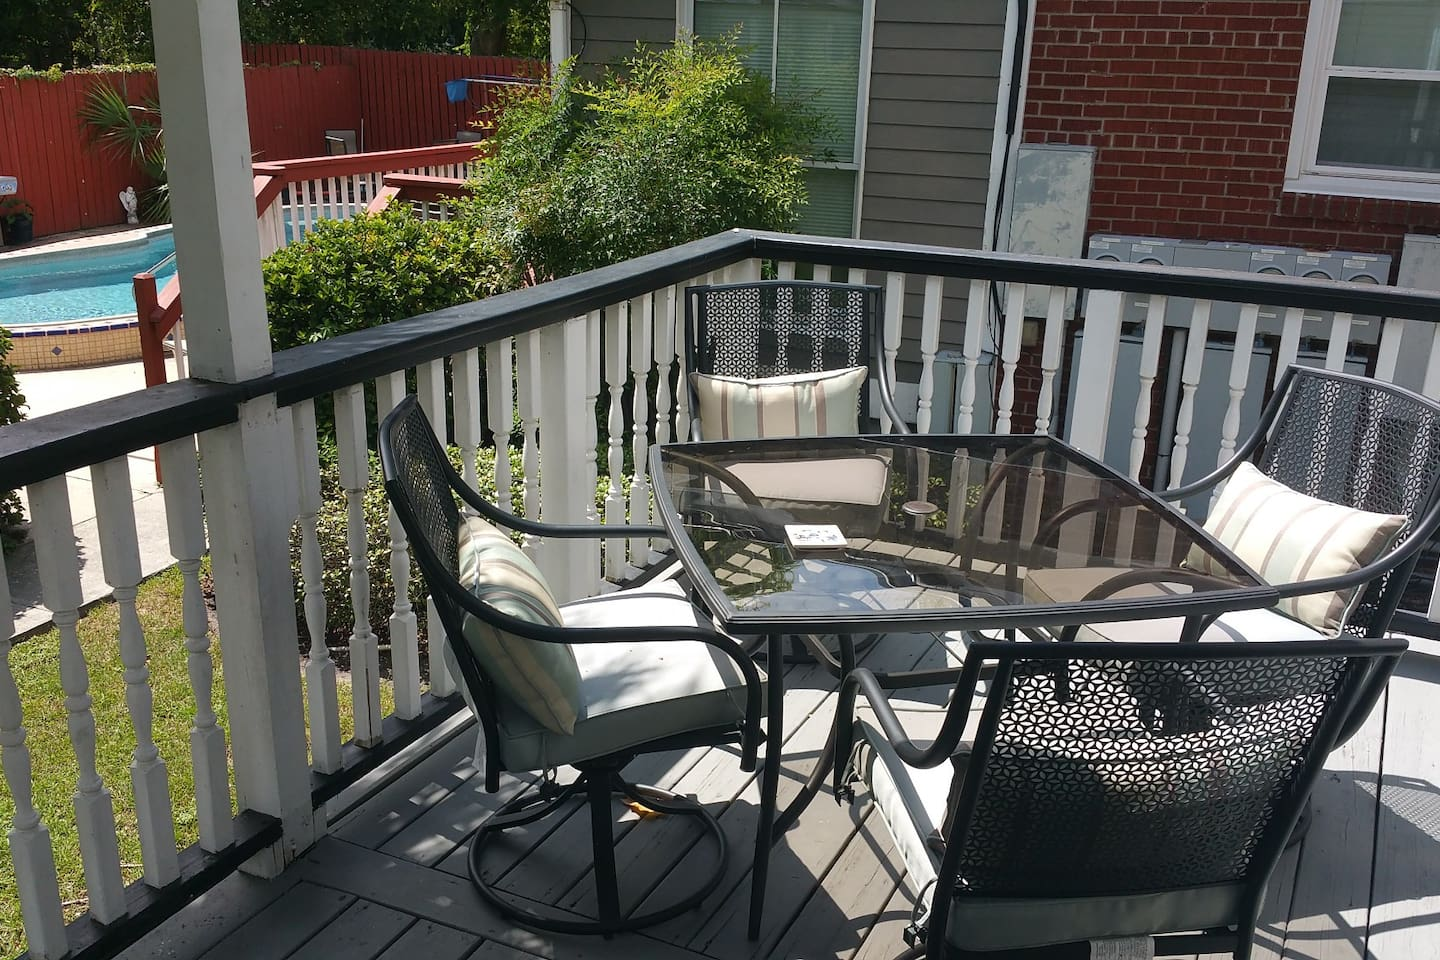 Private back deck with new glass top dining table and cushioned chairs.